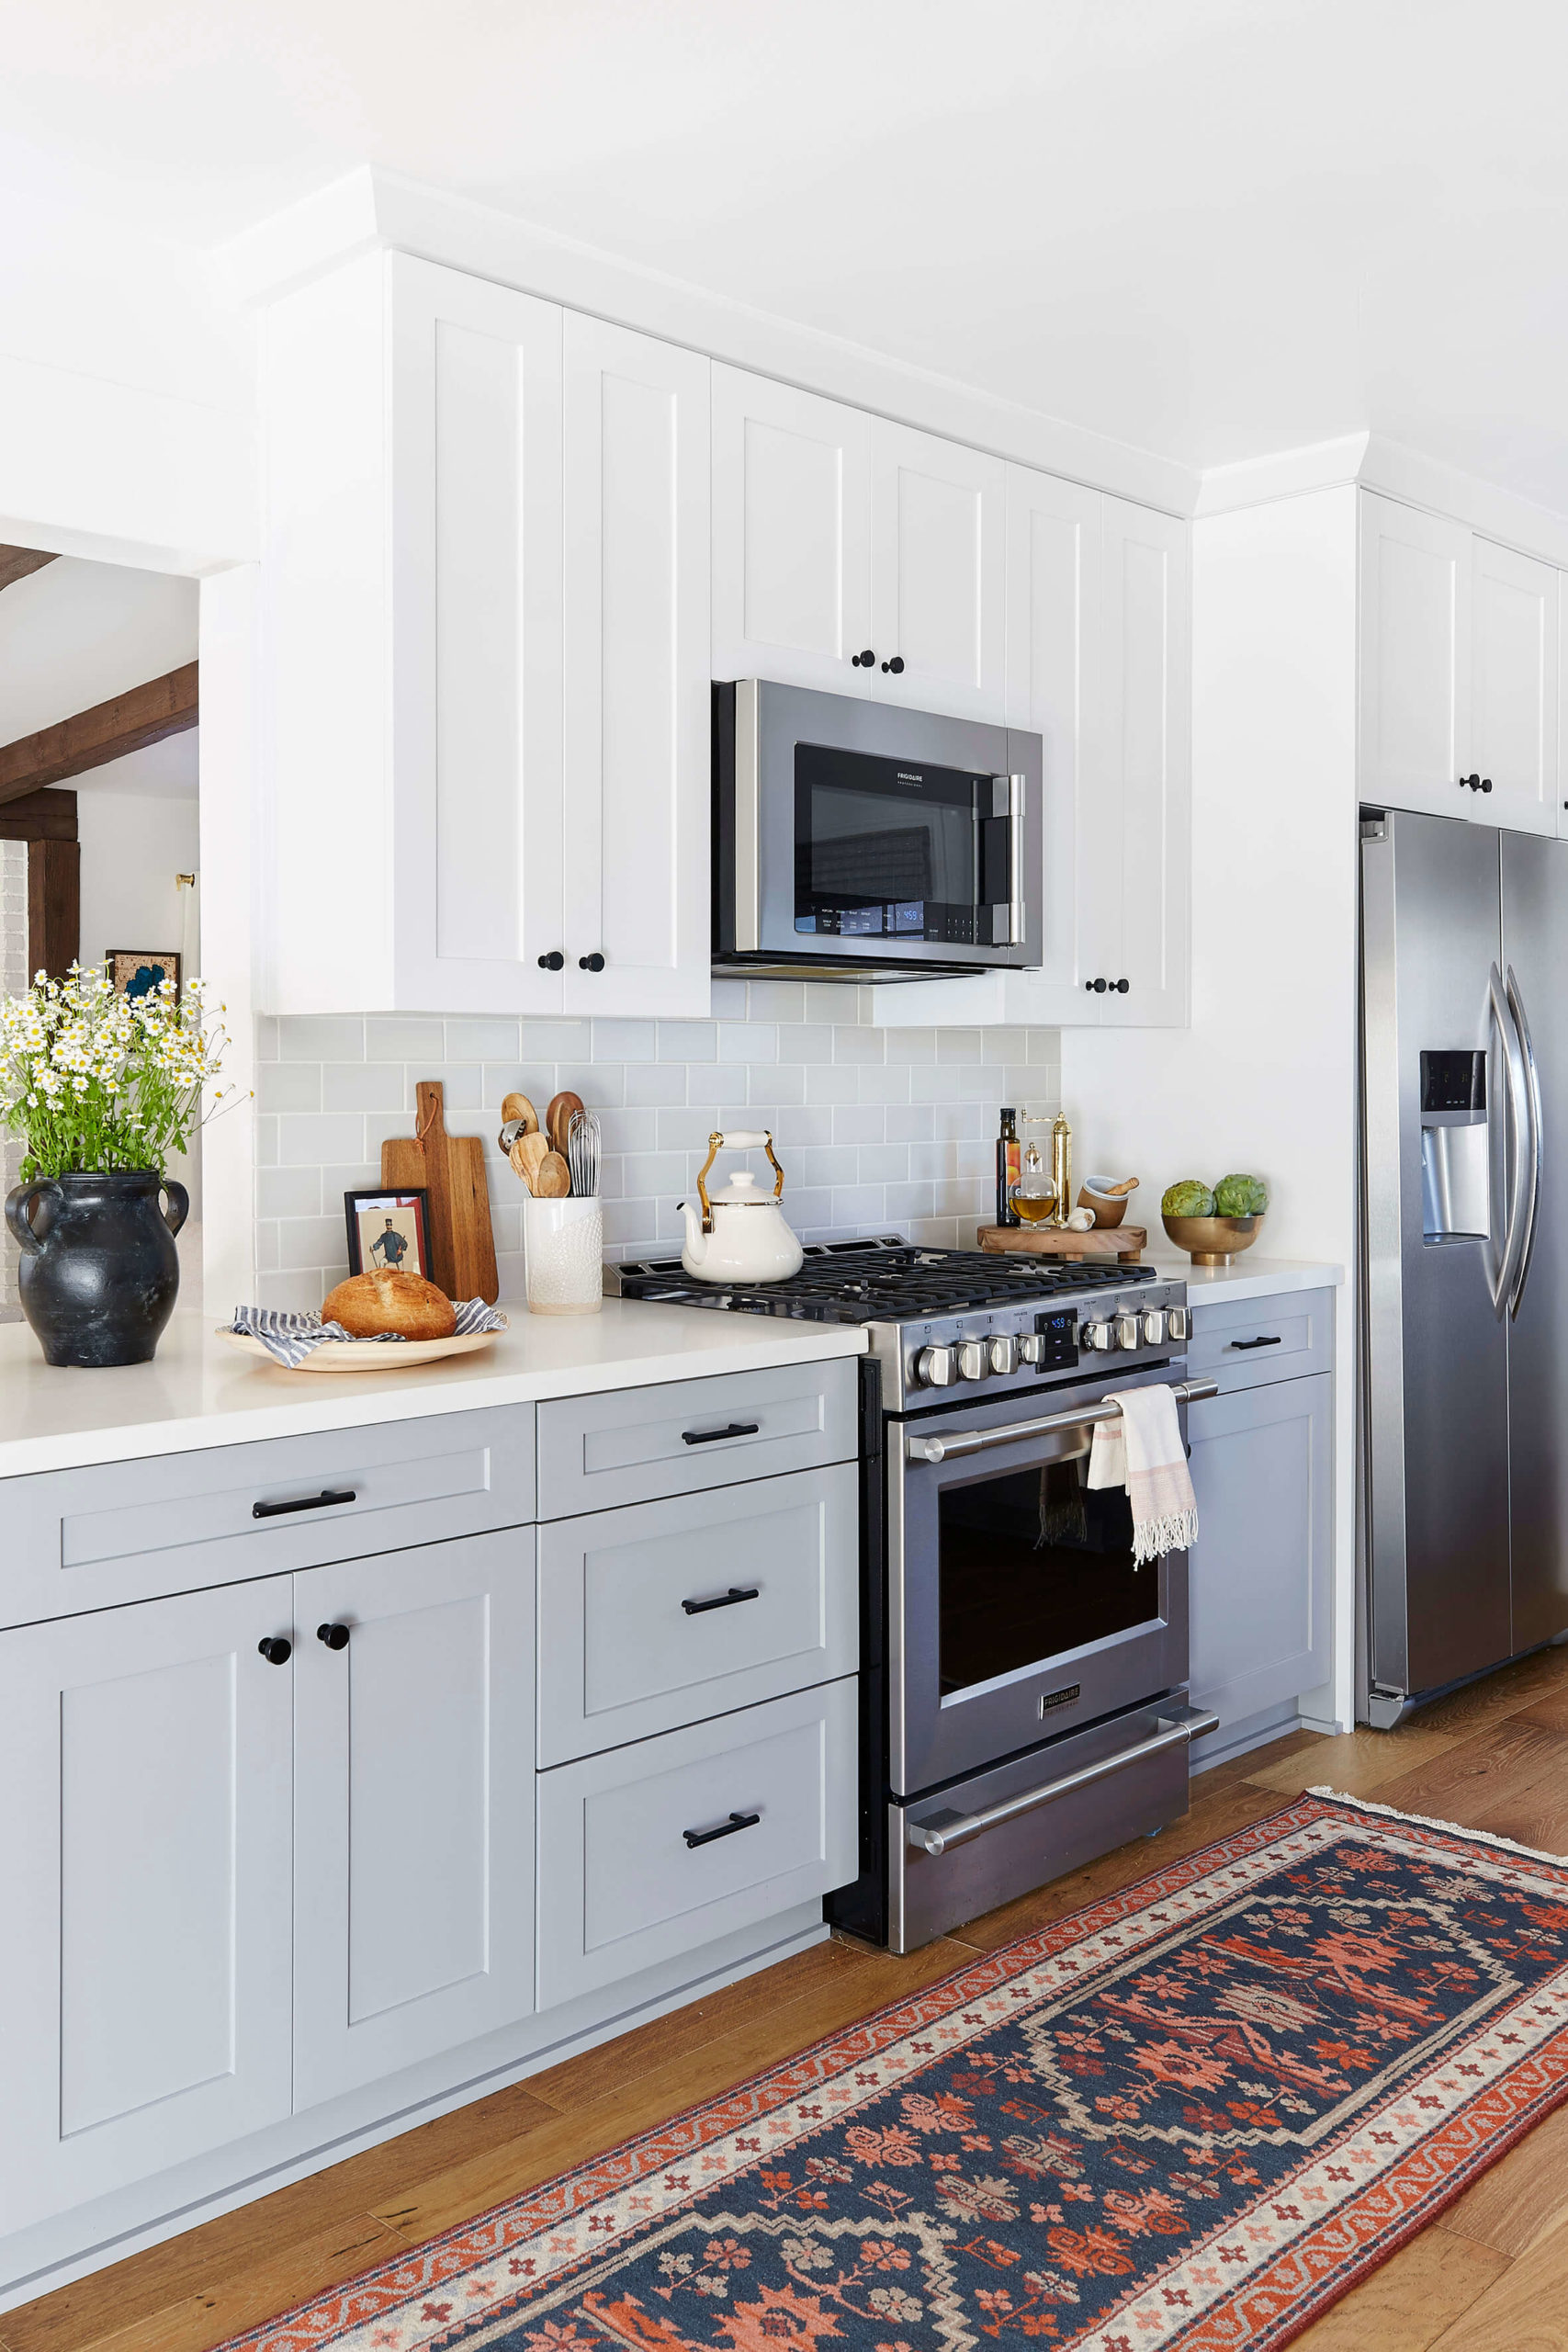 Stainless steel appliances in shaker kitchen interior design by Ginny Macdonald Design